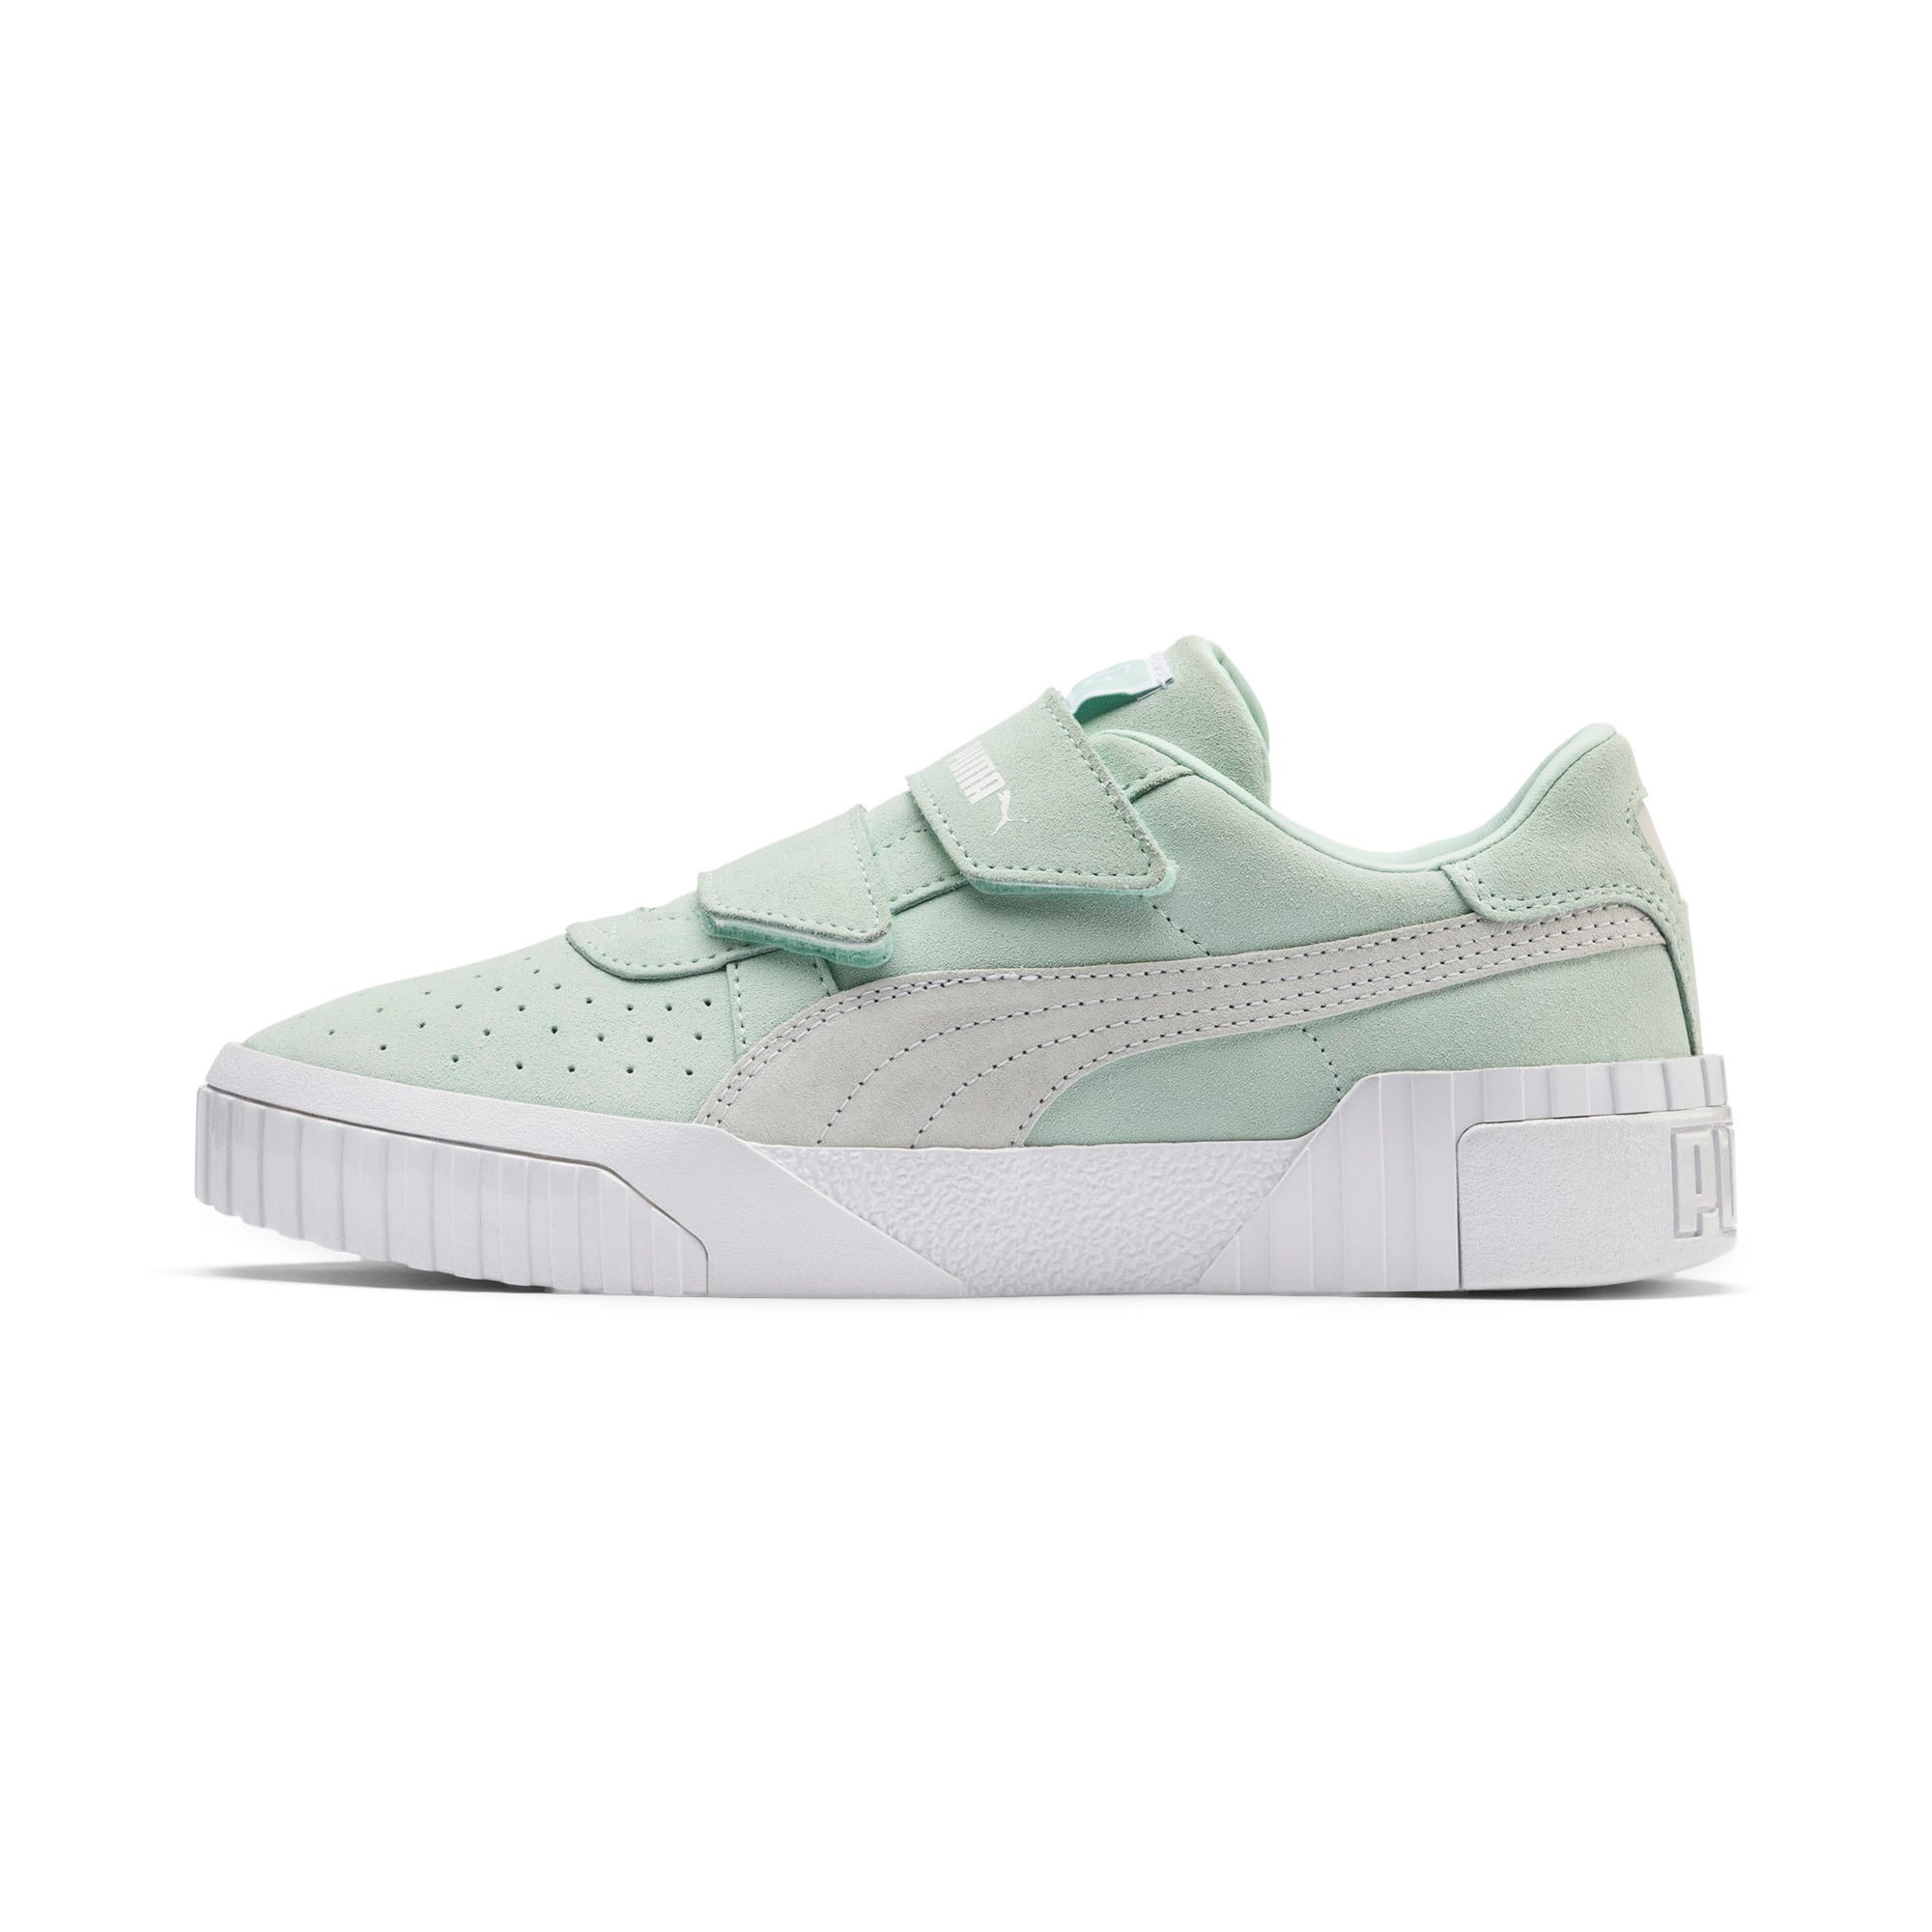 Thumbnail 1 of PUMA x SELENA GOMEZ Cali Women's Trainers, Fair Aqua-Puma White, medium